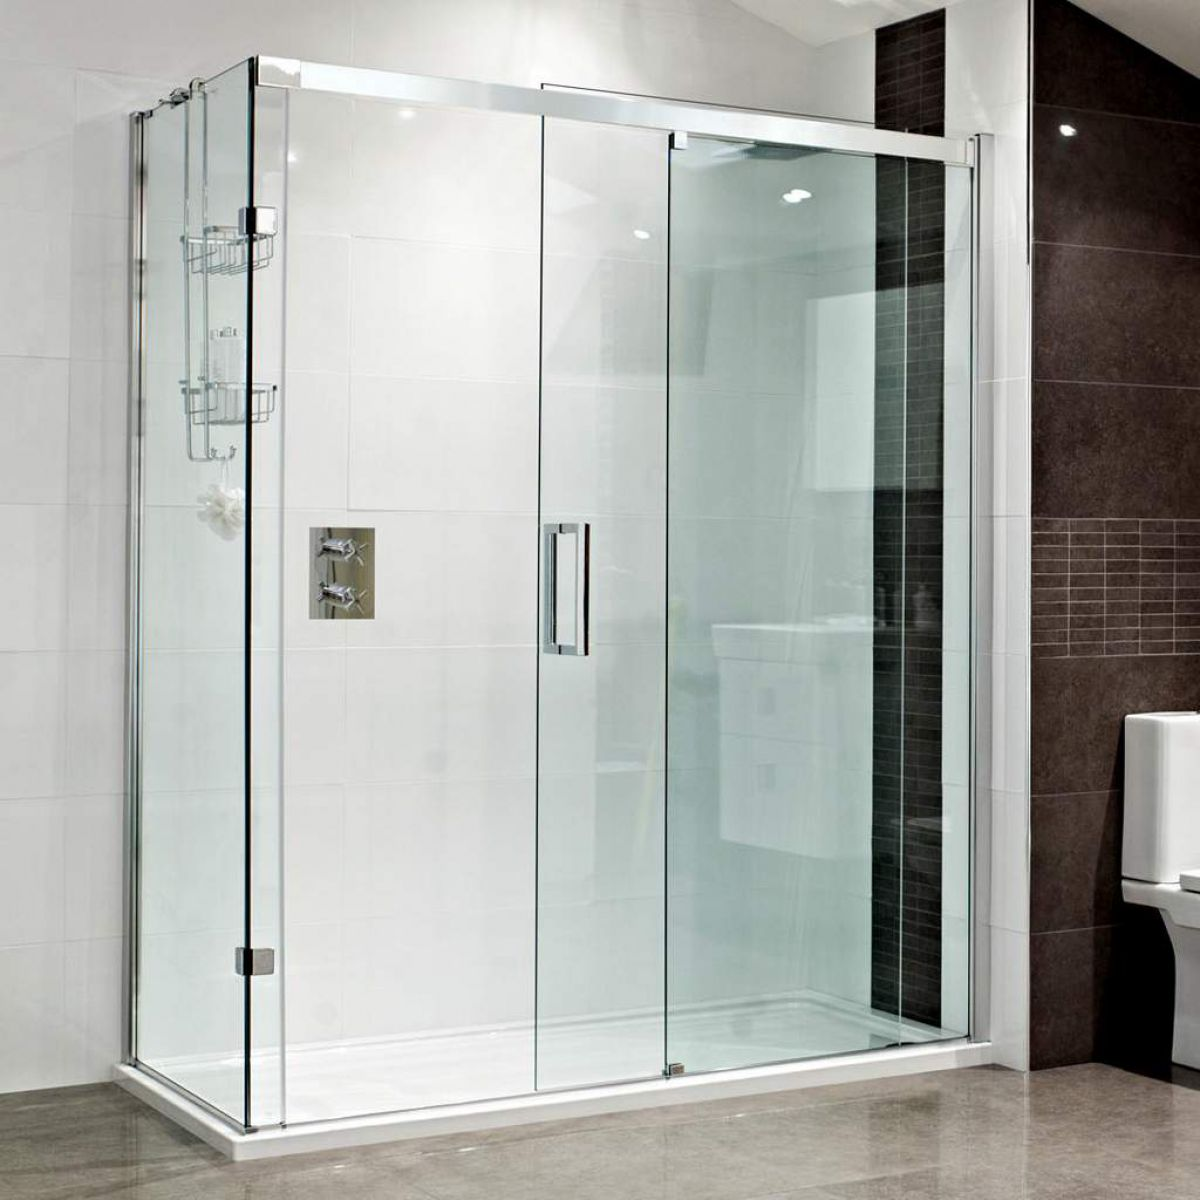 Roman Decem Sliding Door Corner Shower Enclosure Uk